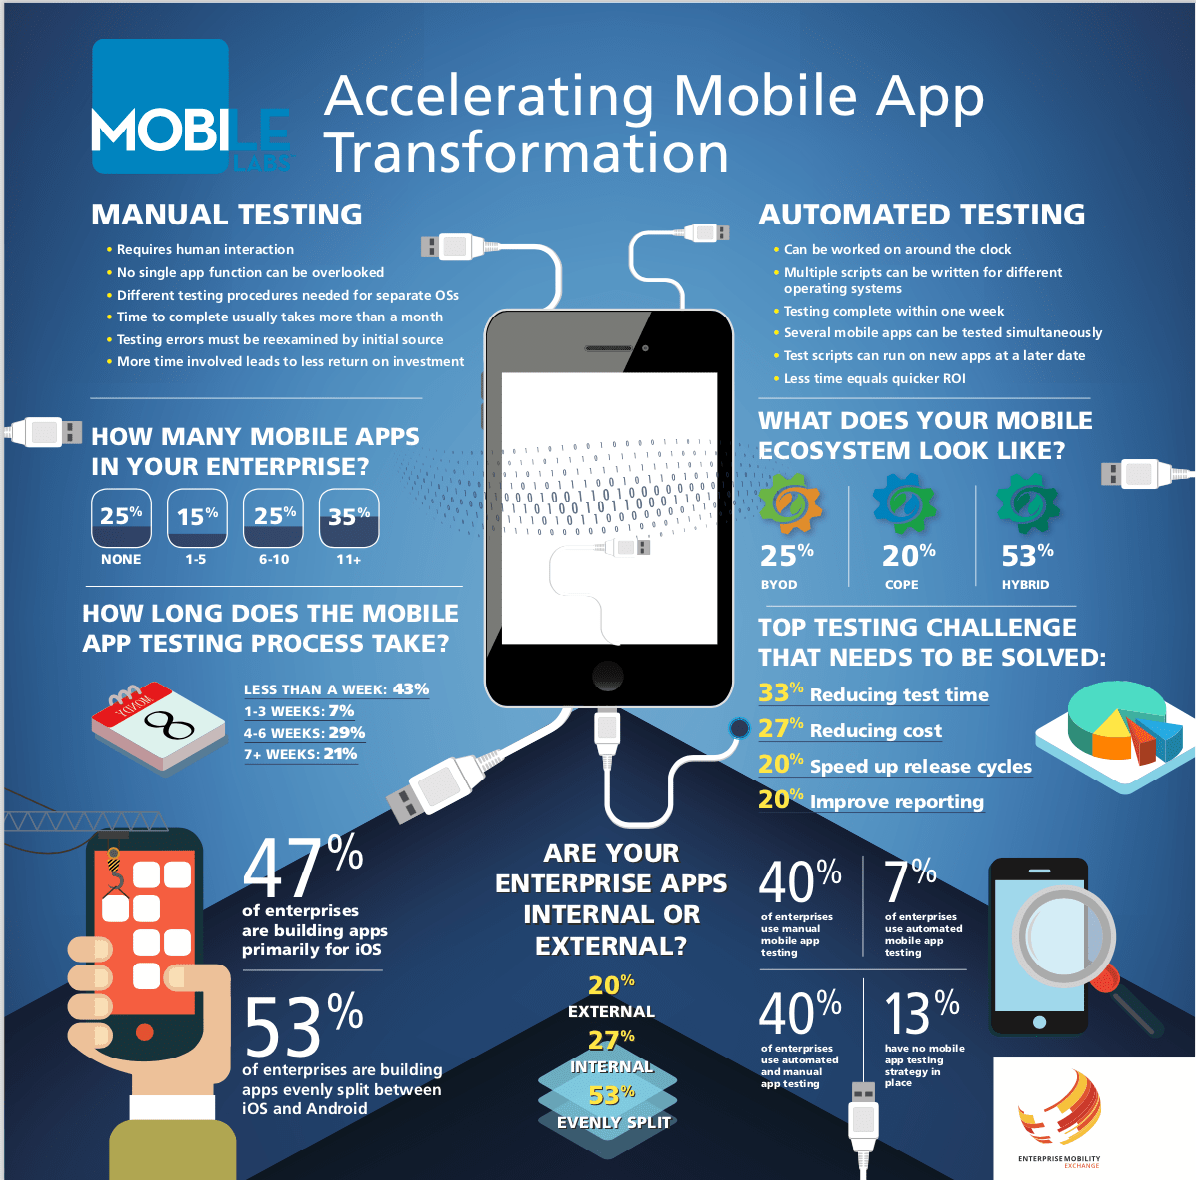 Accelerating Mobile App Transformation